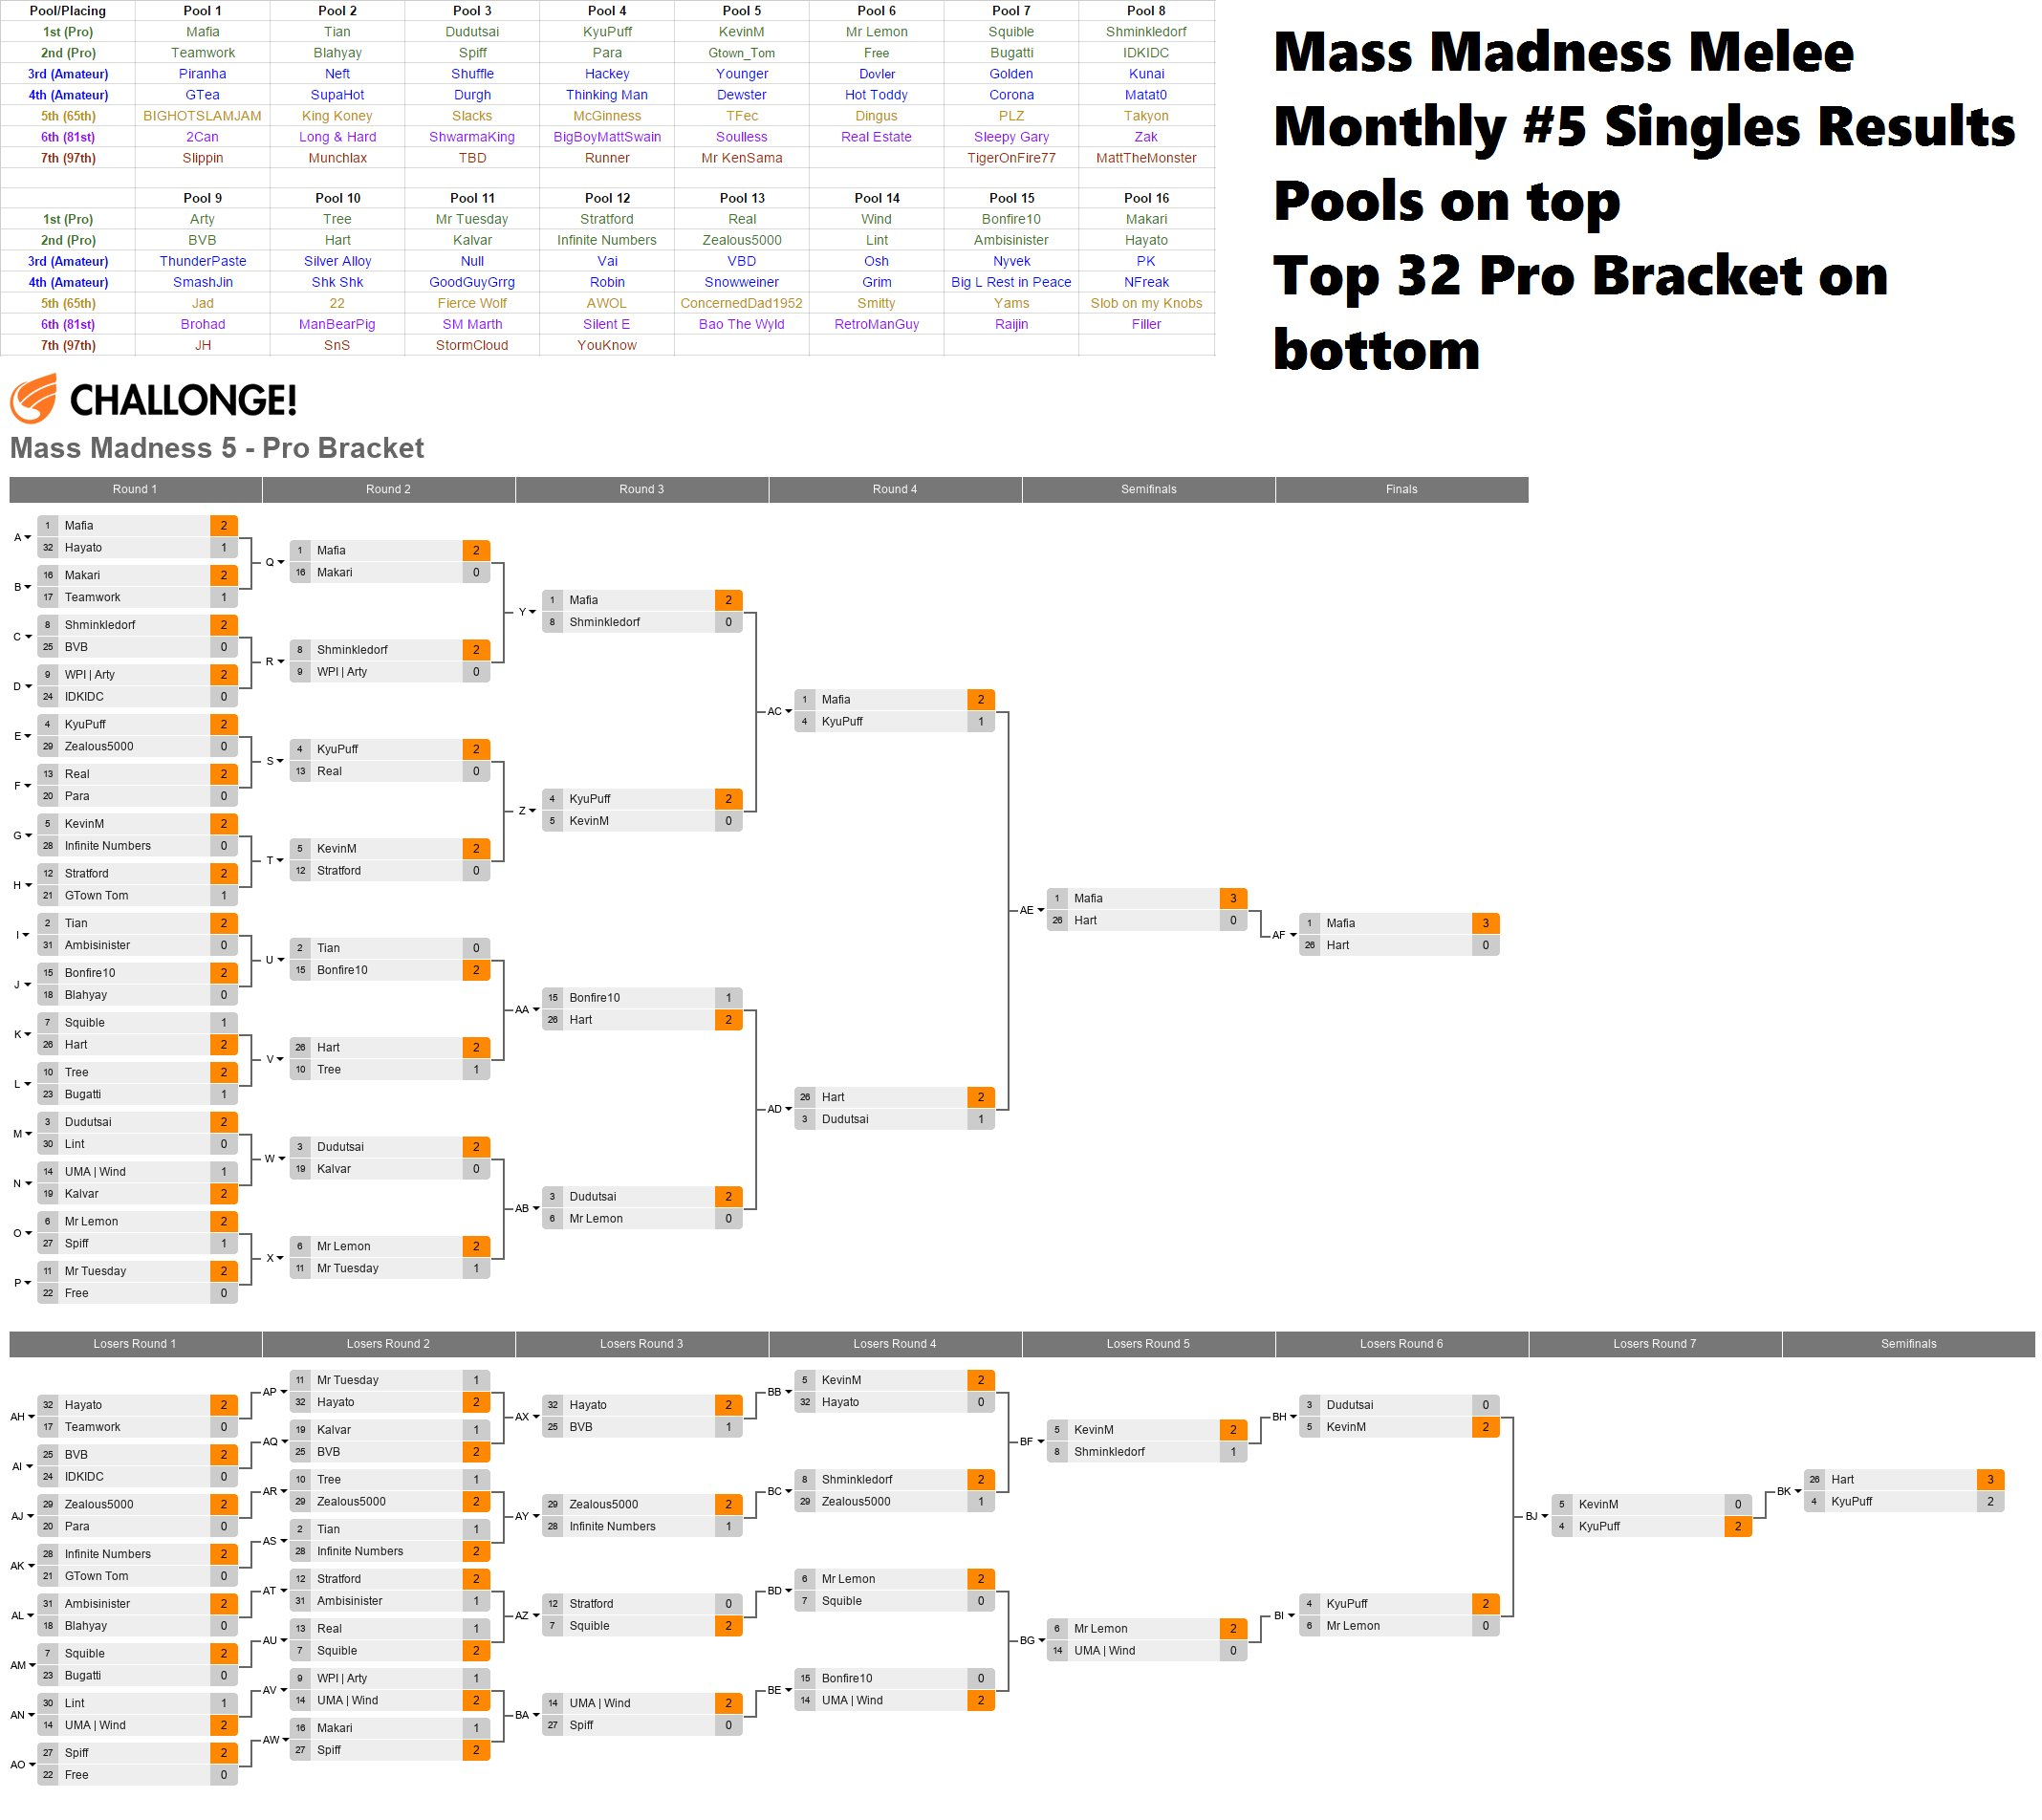 Mass Madness Monthly #5: Melee Singles